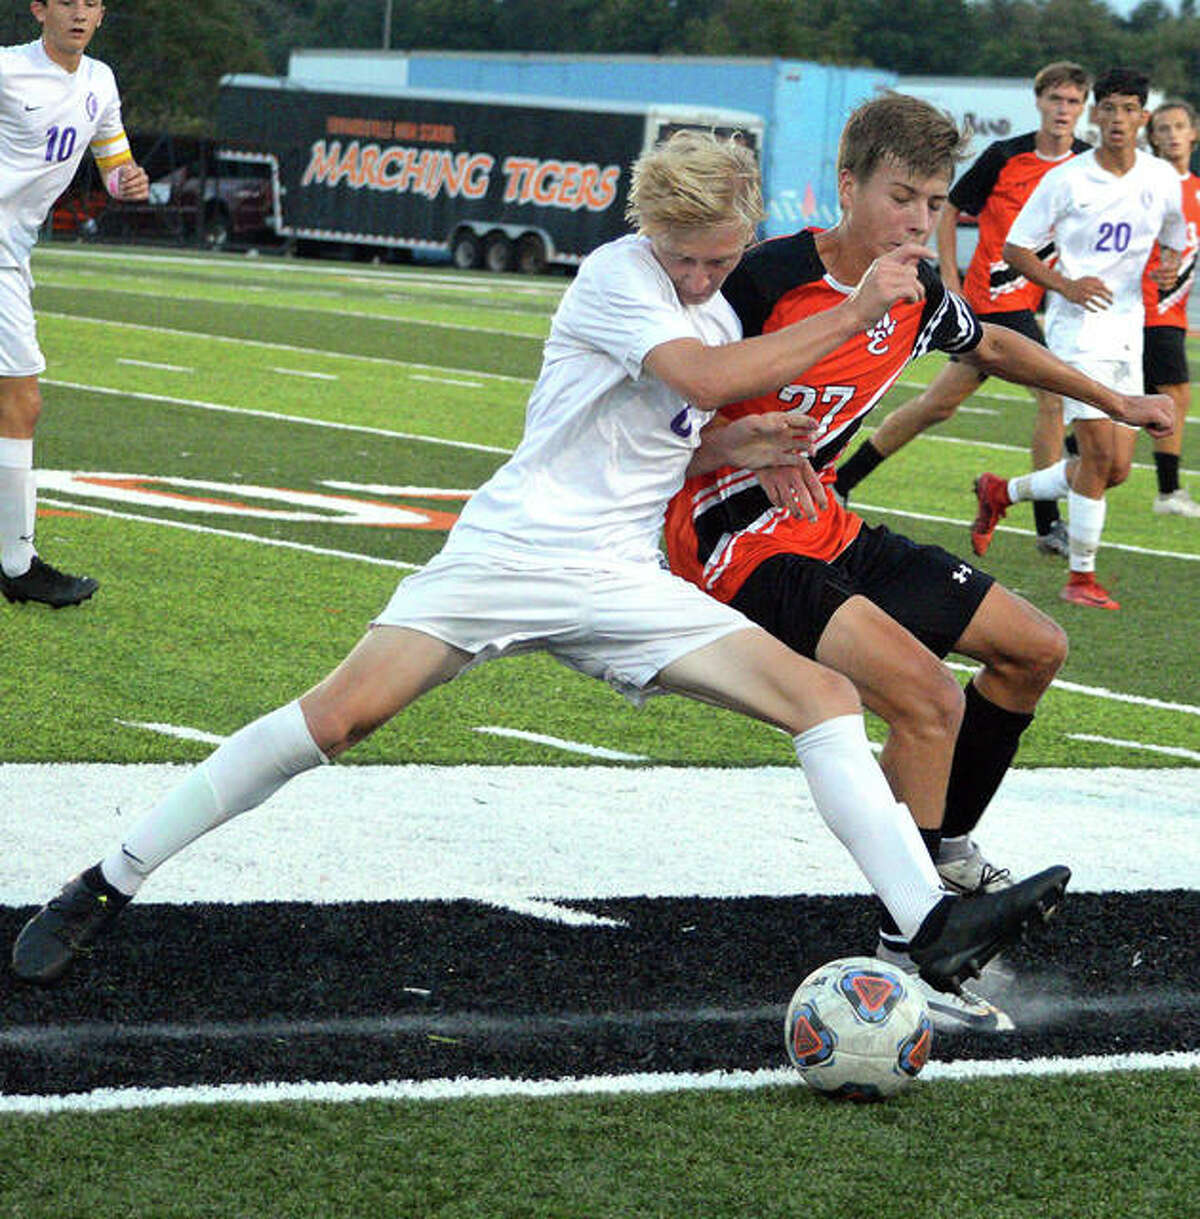 Edwardsville's Adam Sneed, right, and a Collinsville player chase down the ball during the first half of Thursday's game at the District 7 Sports Complex.